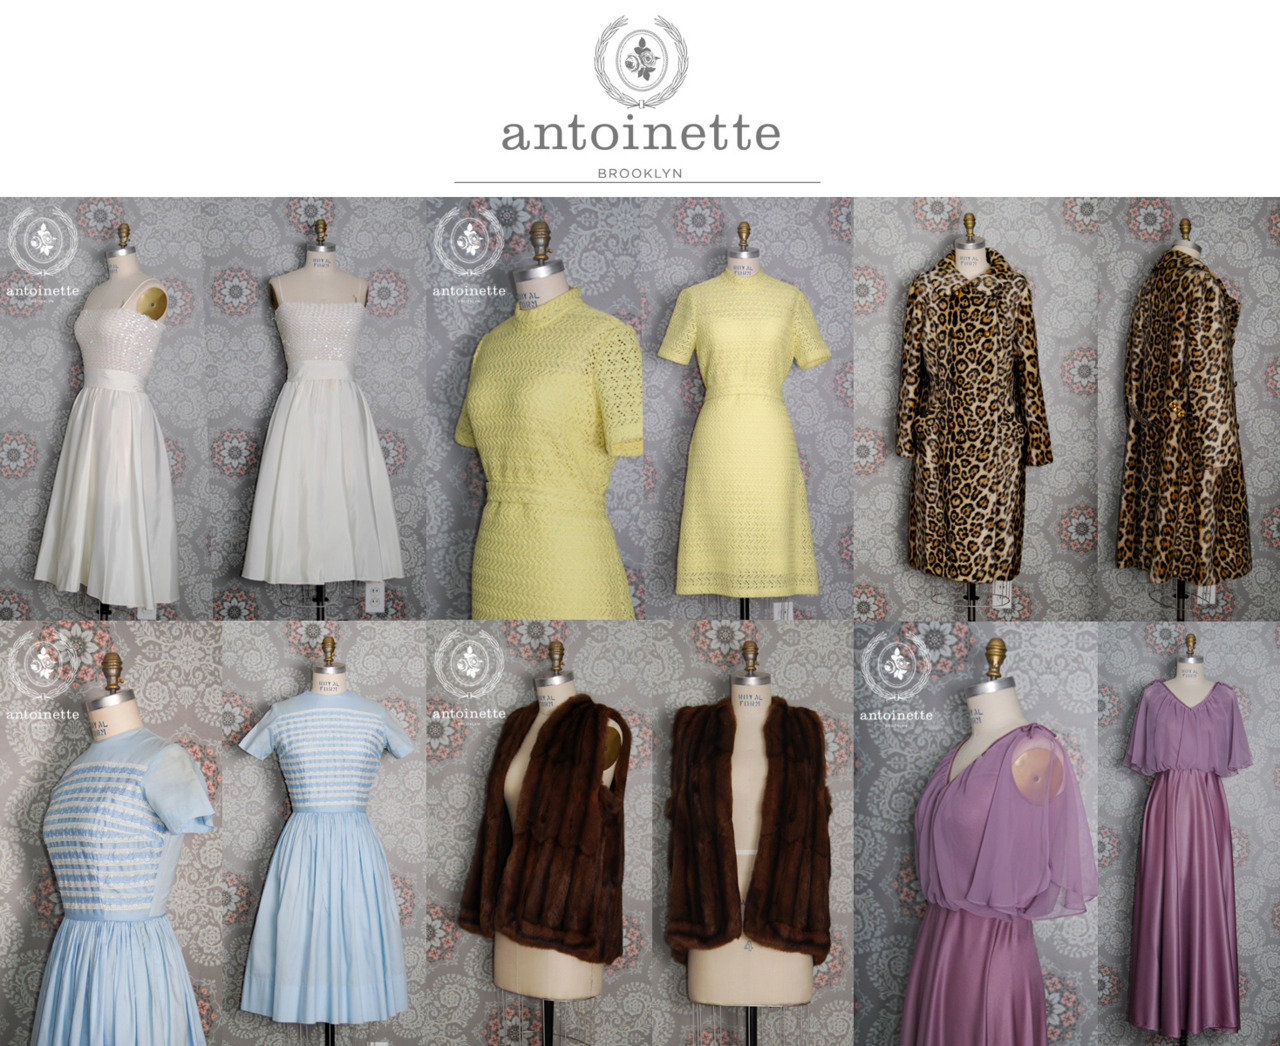 Last chance to purchase antoinette on Market Publique!     https://shop.marketpublique.com/adsearch.php?title=antoinette&desc=y&category=-1&minprice=&maxprice=&seller=&country=United+States&zipcode=&ending=Select…&SortProperty=Select…&action=search&PAGE=1&go=GO+%3E%3E